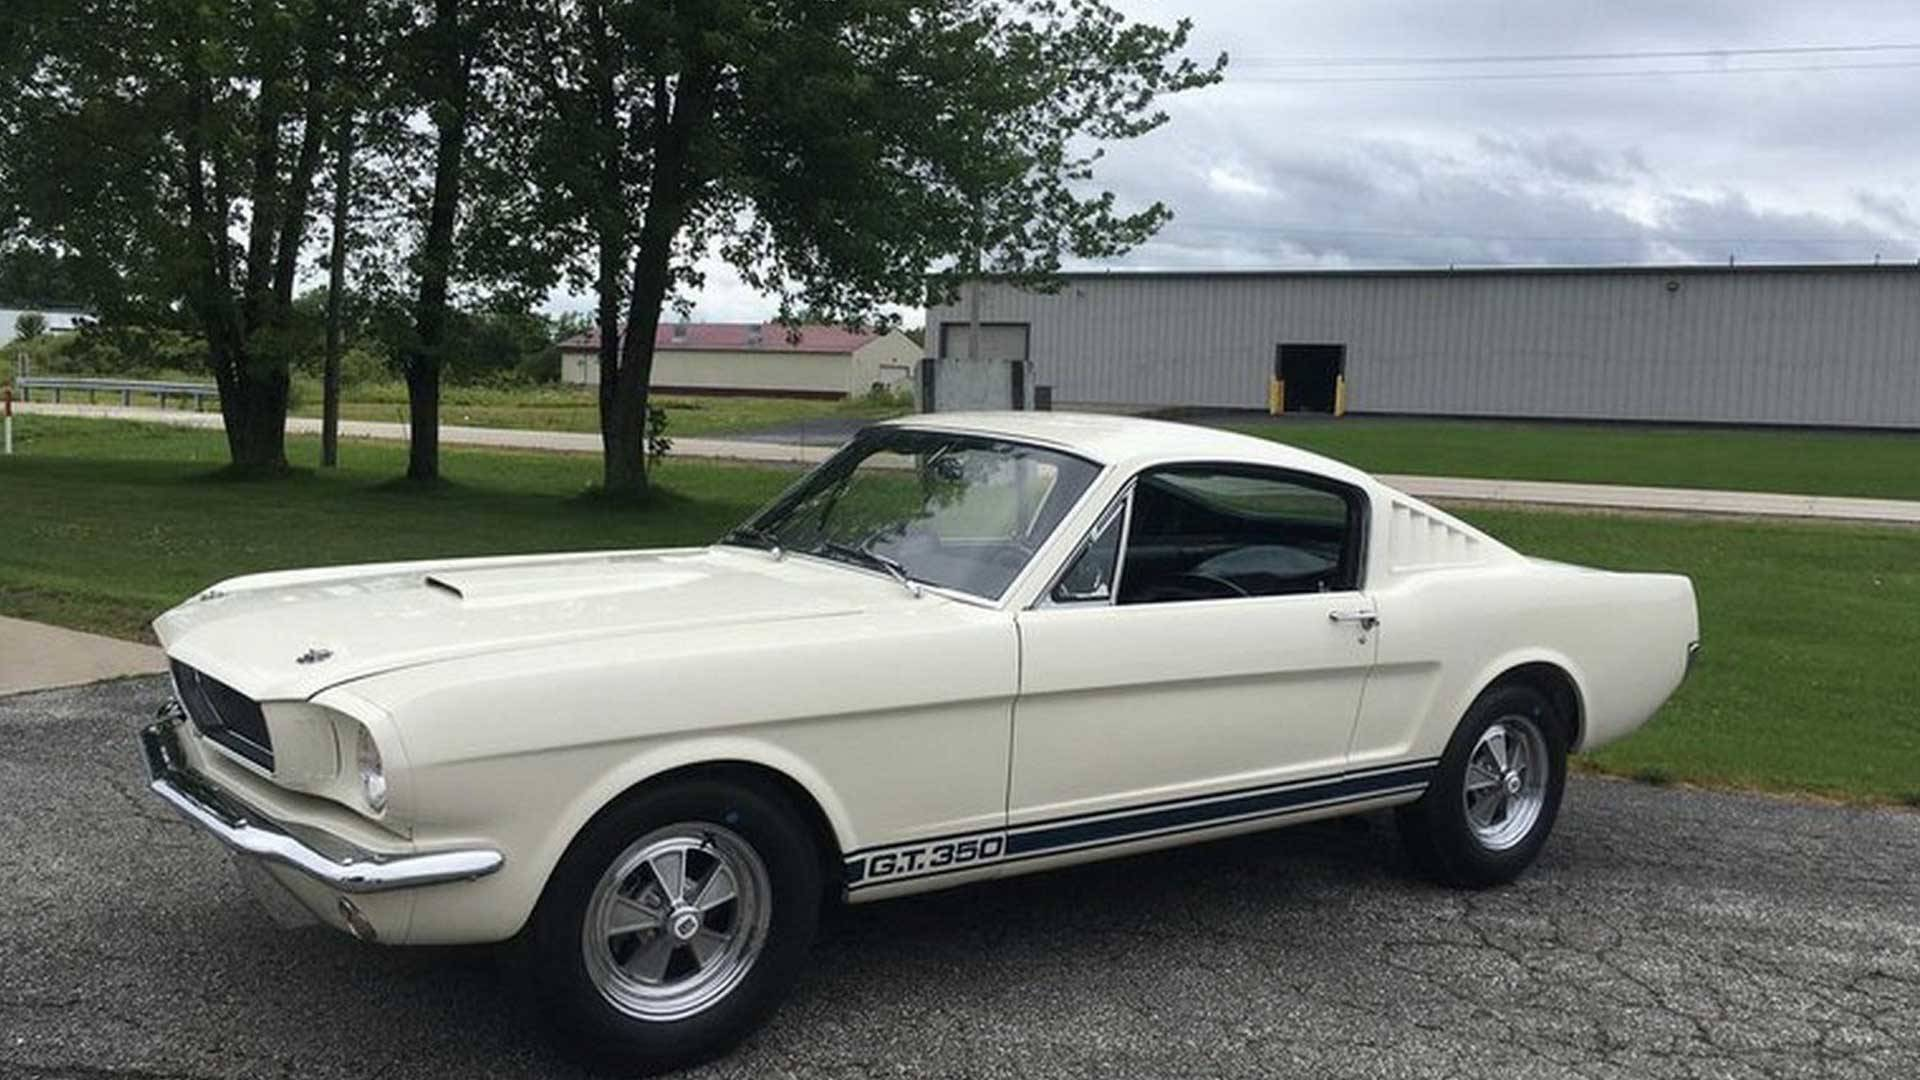 This early shelby gt350 mustang is an original 575k time capsule